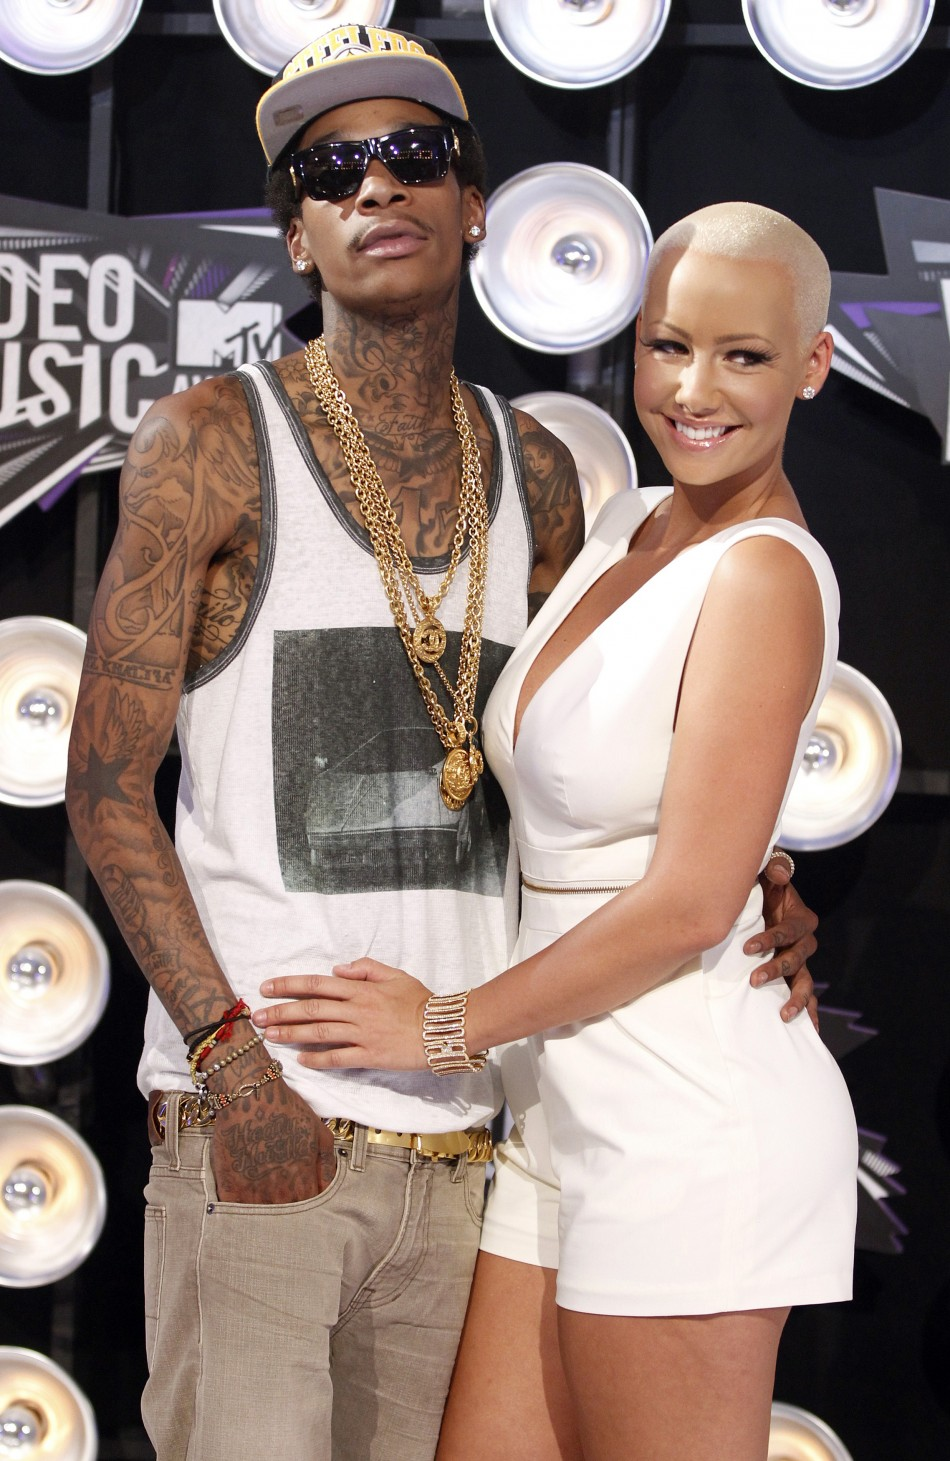 Who is wiz khalifa dating in Sydney